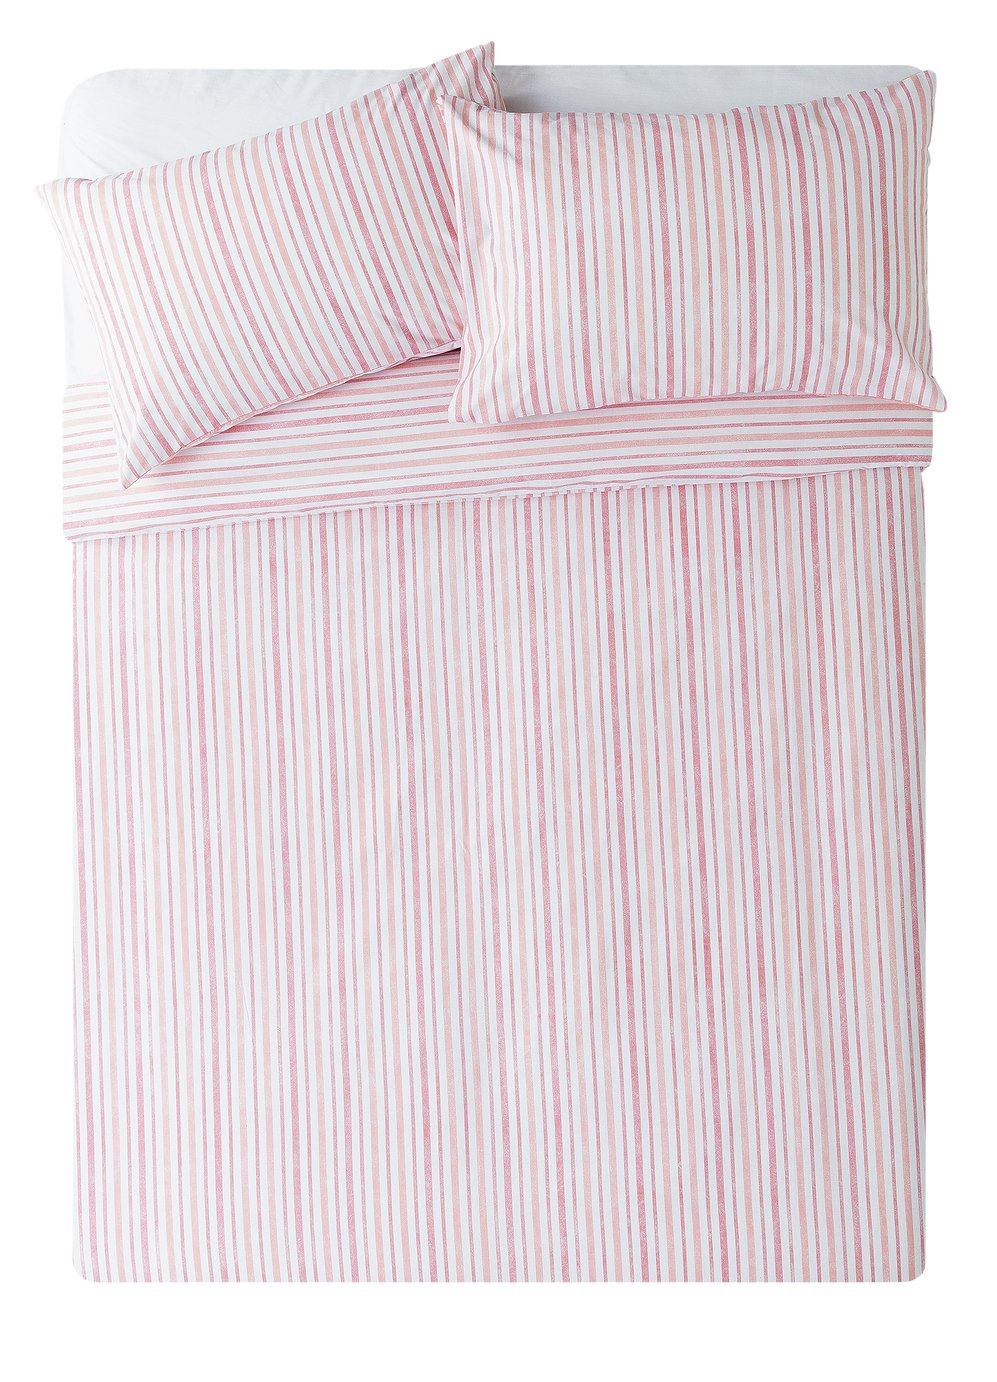 Argos Home Striped Bedding Set - Double